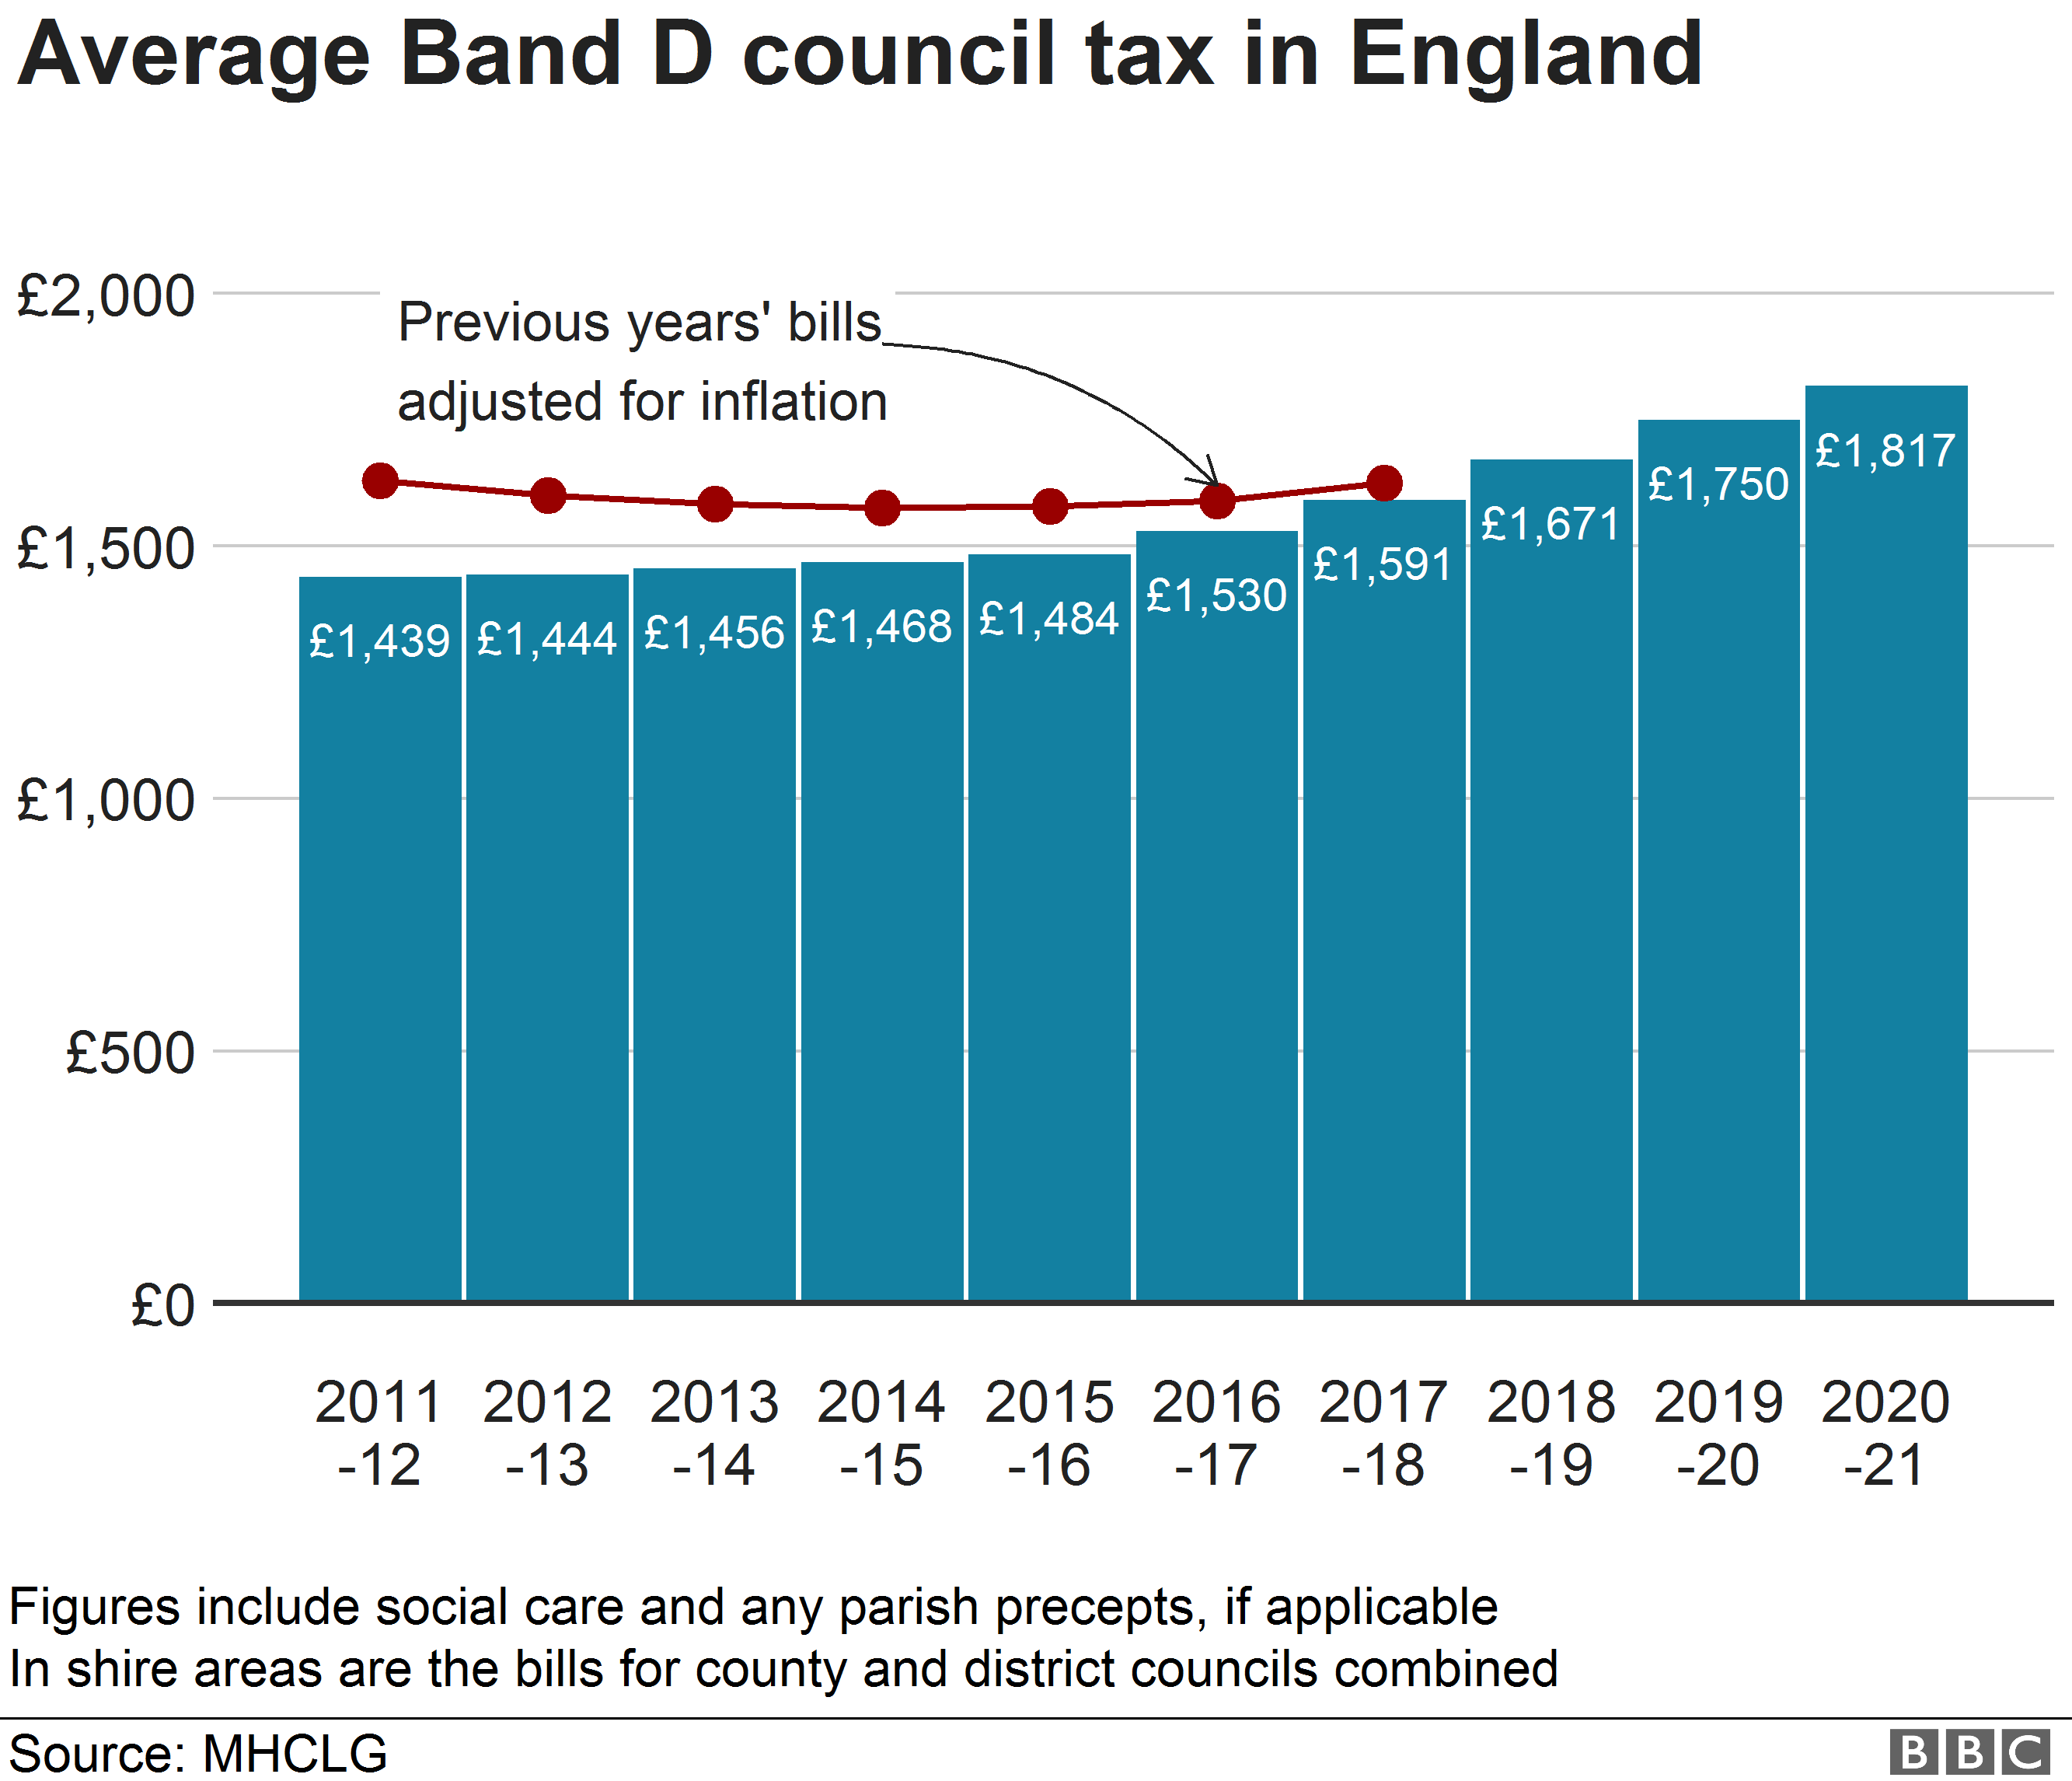 Chart showing average Band D council tax bills in England